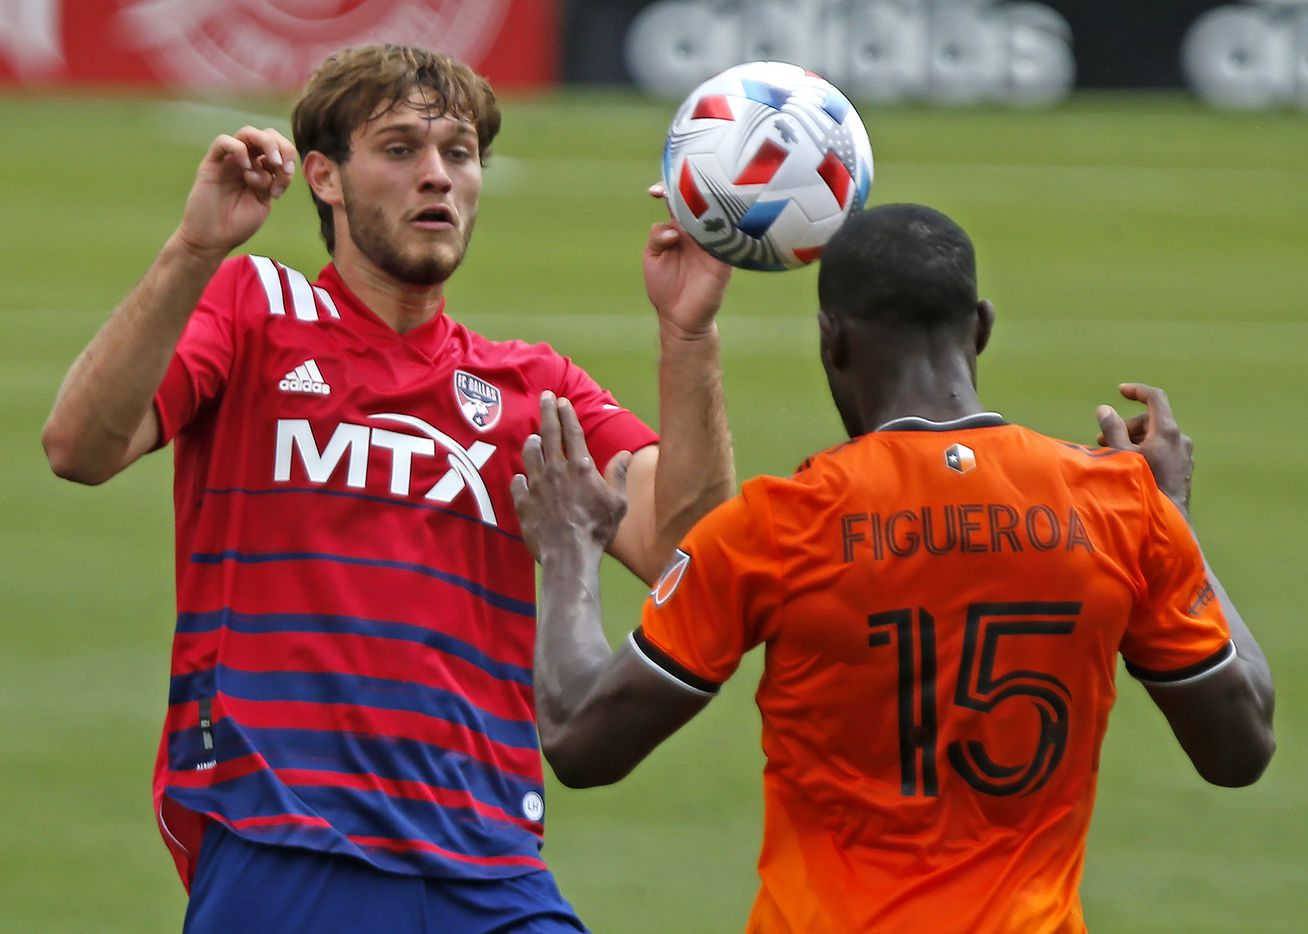 FC Dallas midfielder Tanner Tessmann (15) prepares to intercept a header by Houston Dynamo defender Maynor Figueroa (15) during the first half as FC Dallas hosted the Houston Dynamo at Toyota Stadium in Frisco on May 8, 2021. (Stewart F. House/Special Contributor)